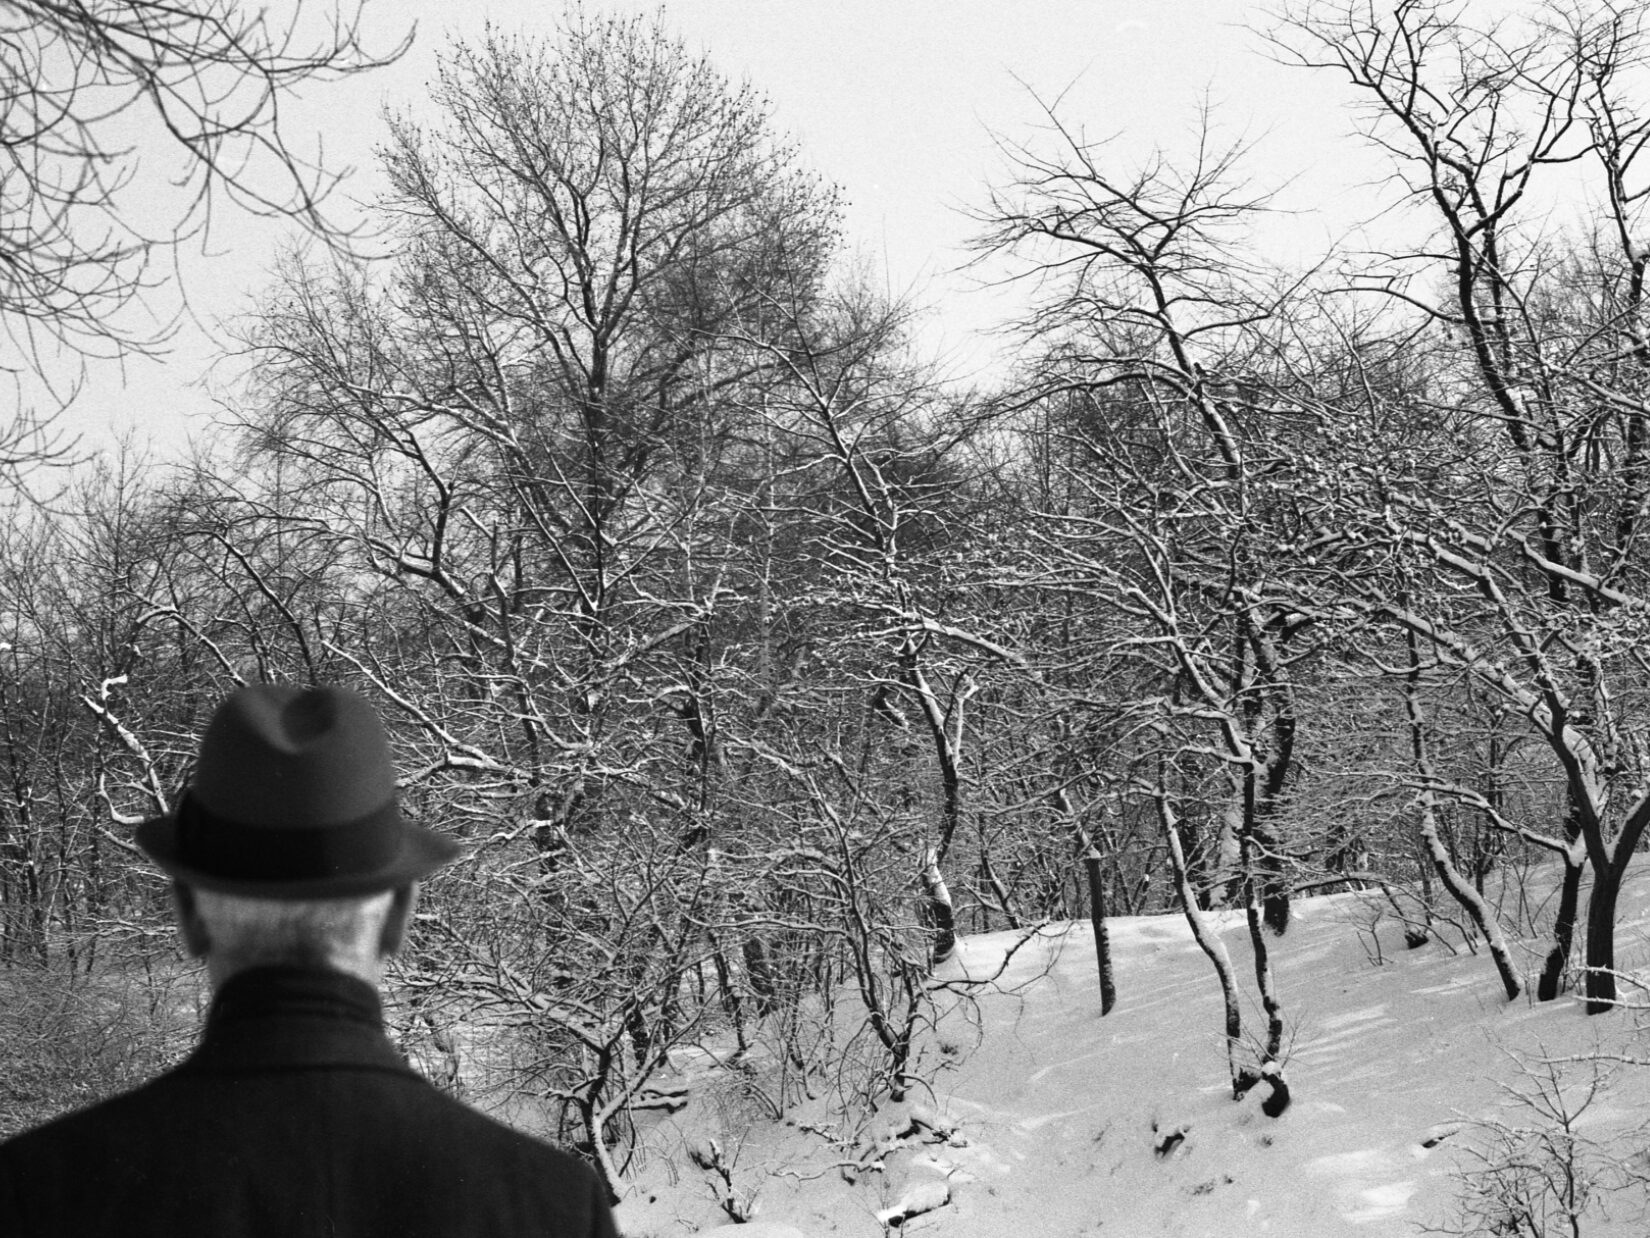 A man in a fedora is seen from behind with a wintery scene in the background